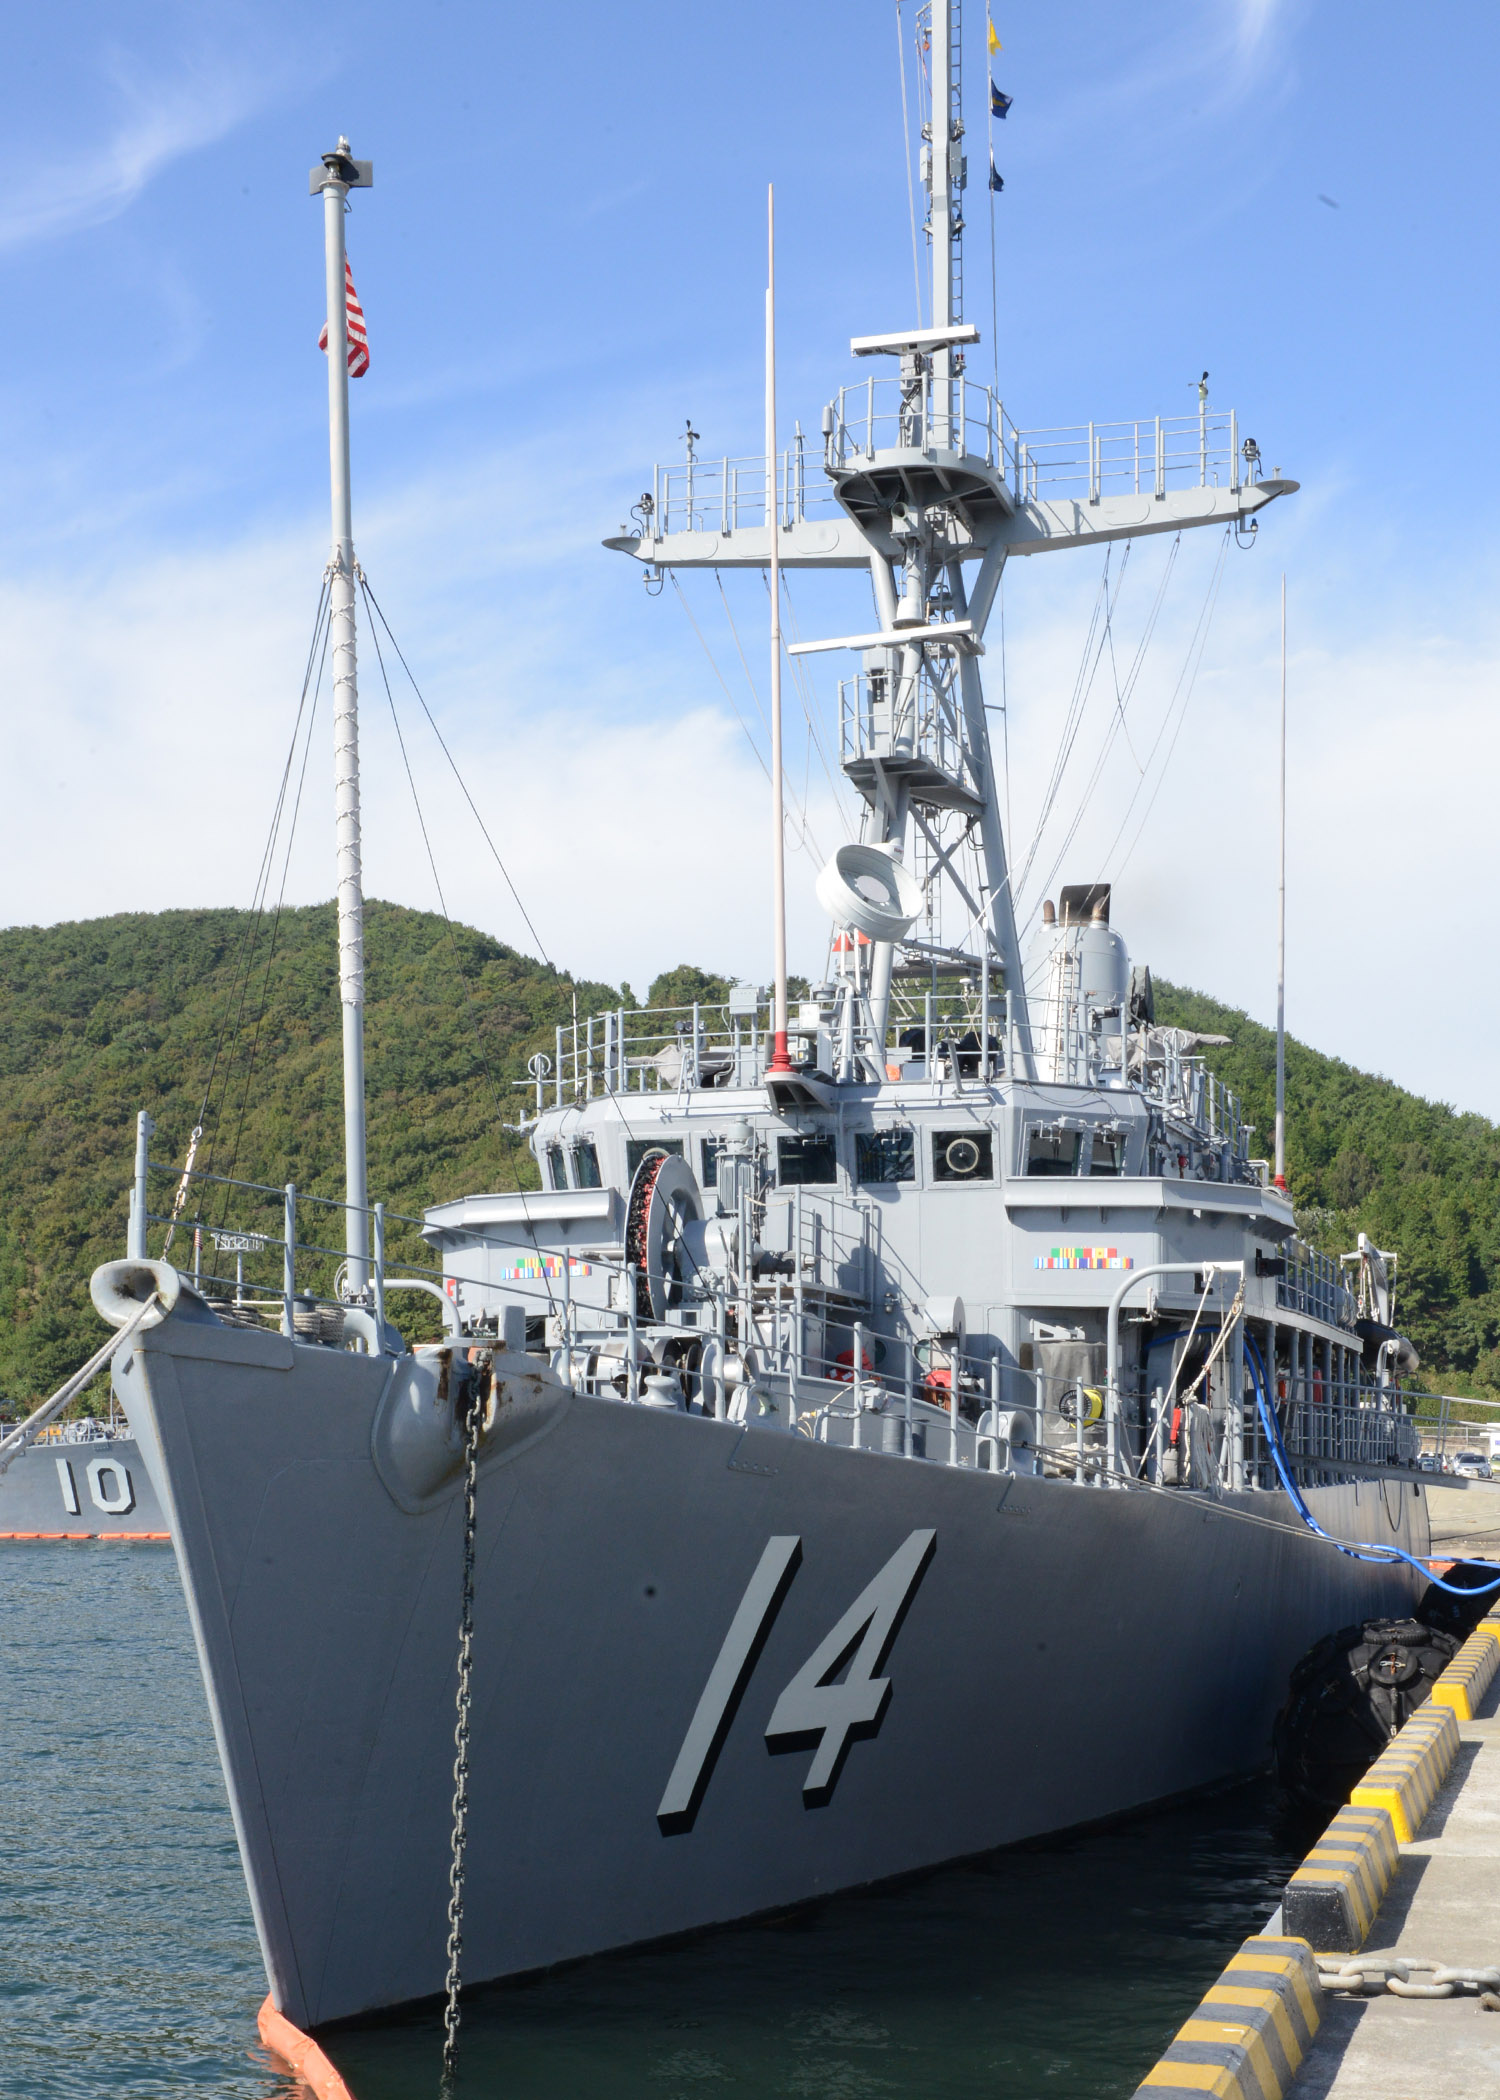 FileThe Mine Countermeasures Ship USS Chief MCM Is Moored To - Chinhae naval base